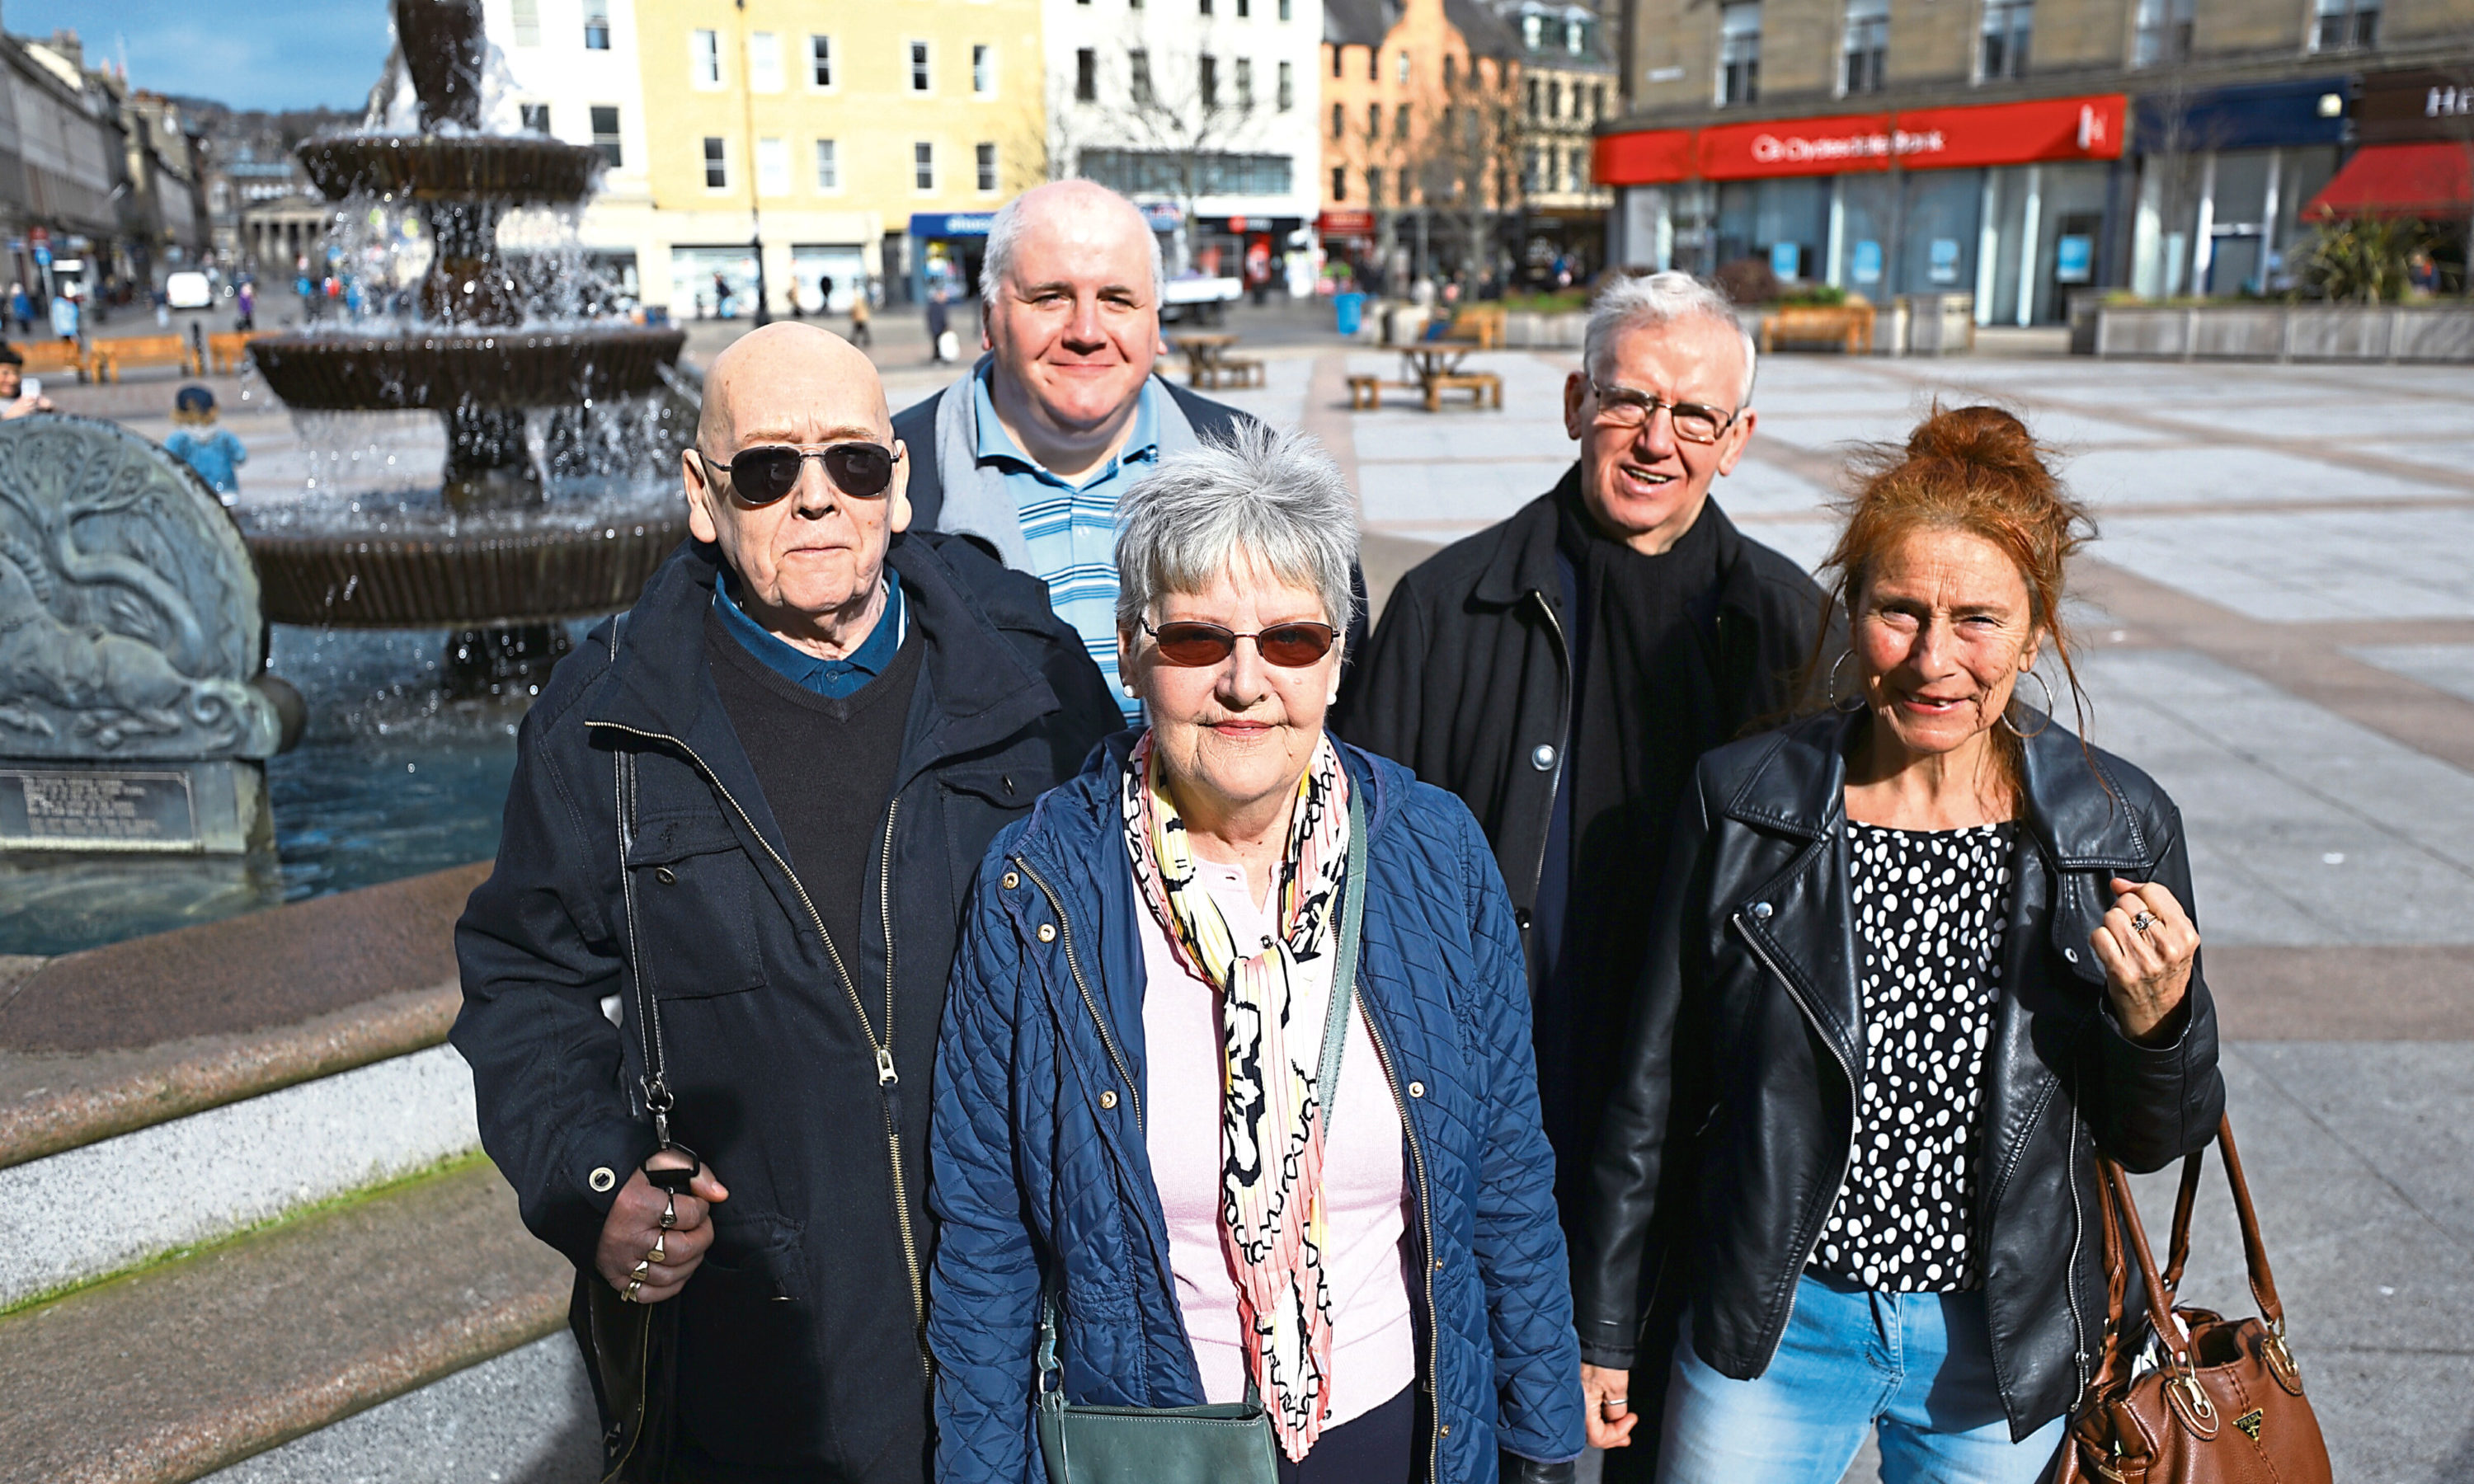 Members of the Dundee Pensioners Forum, Front: Dorothy McHugh and Barbara Myloff. Back: Jim Elder, Murray Webster and Gordon Samson.